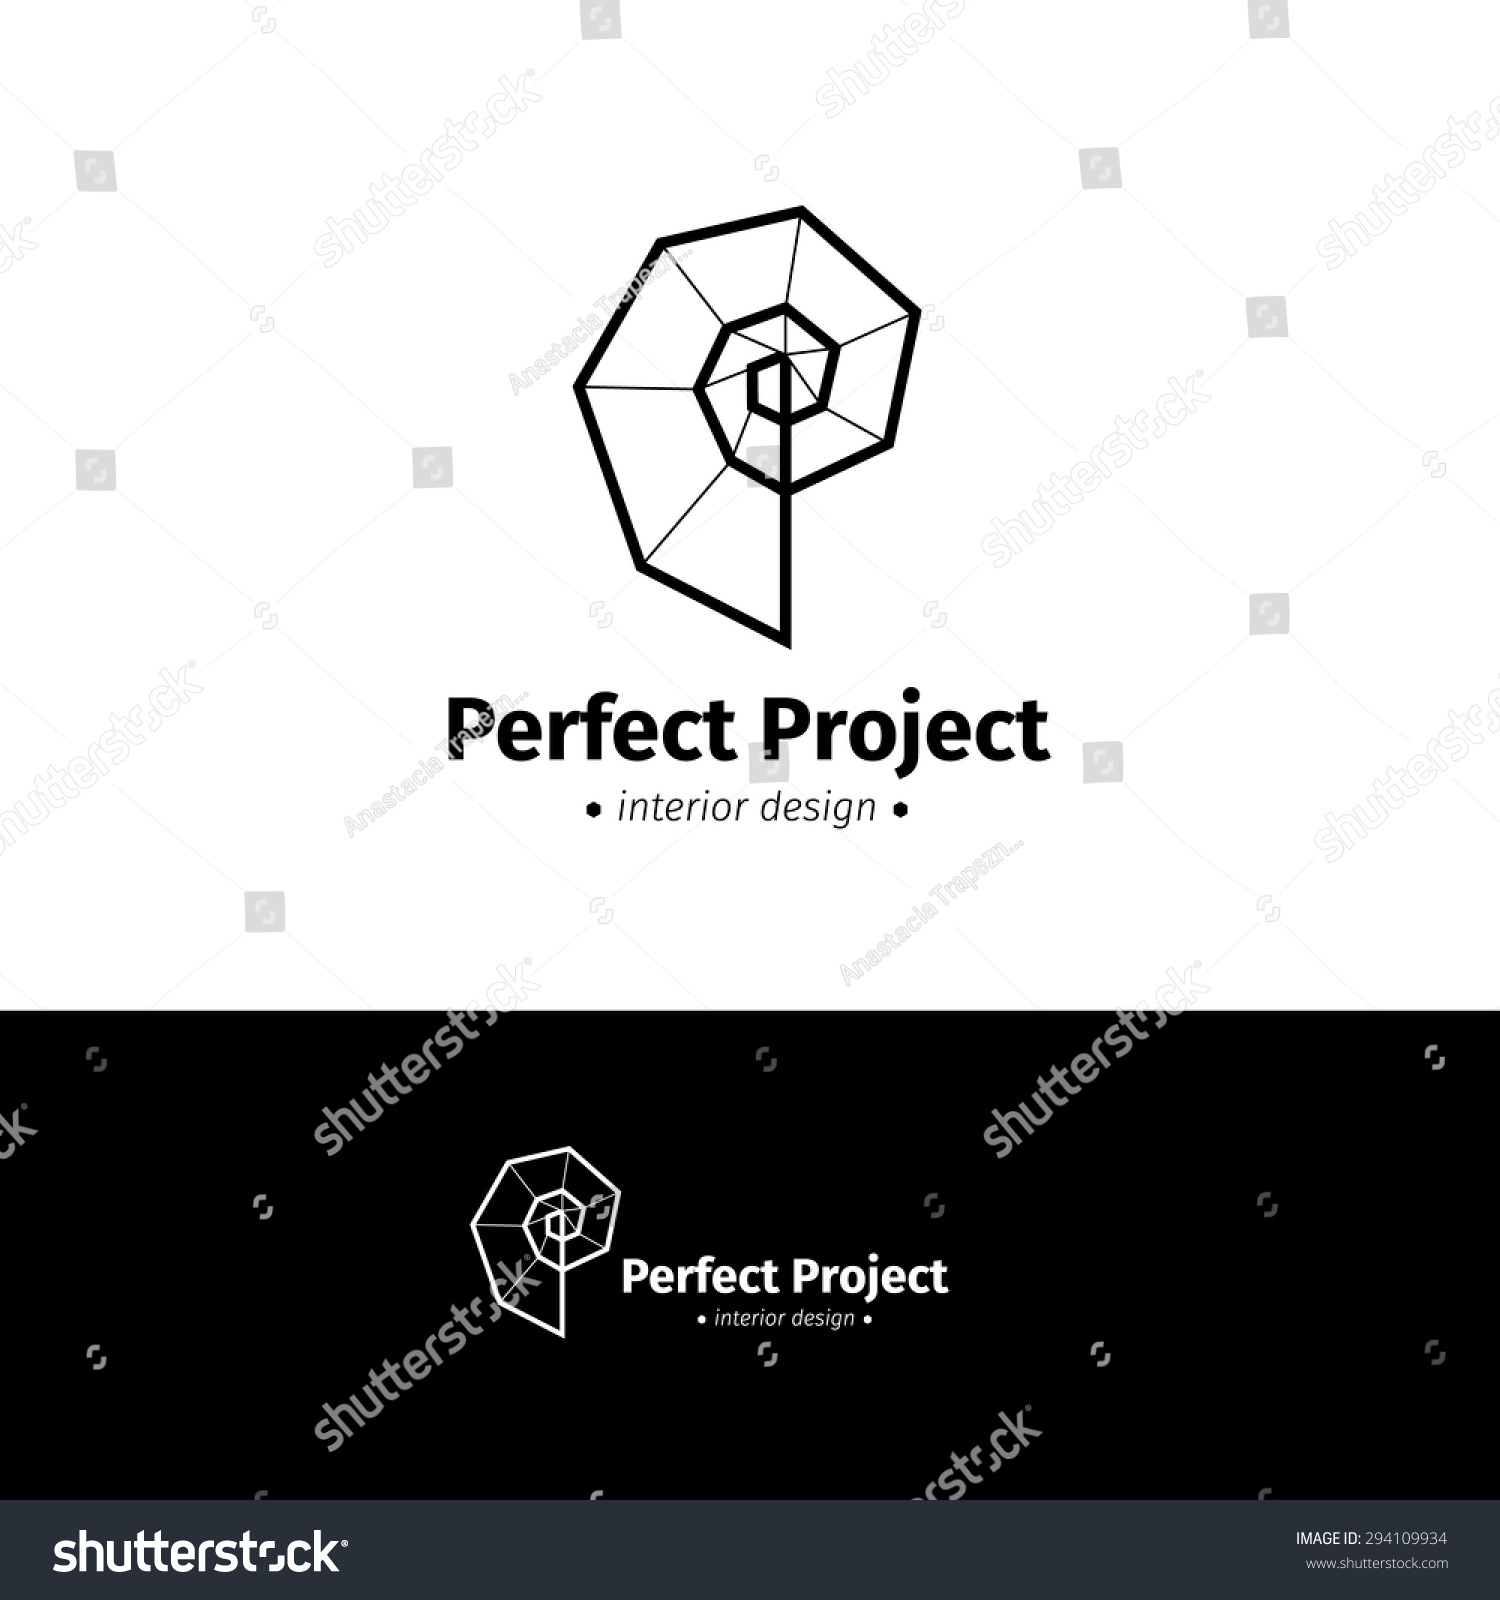 Vector Modern Minimalistic Interior Design Logo Black And White Creative Spiral Logotype